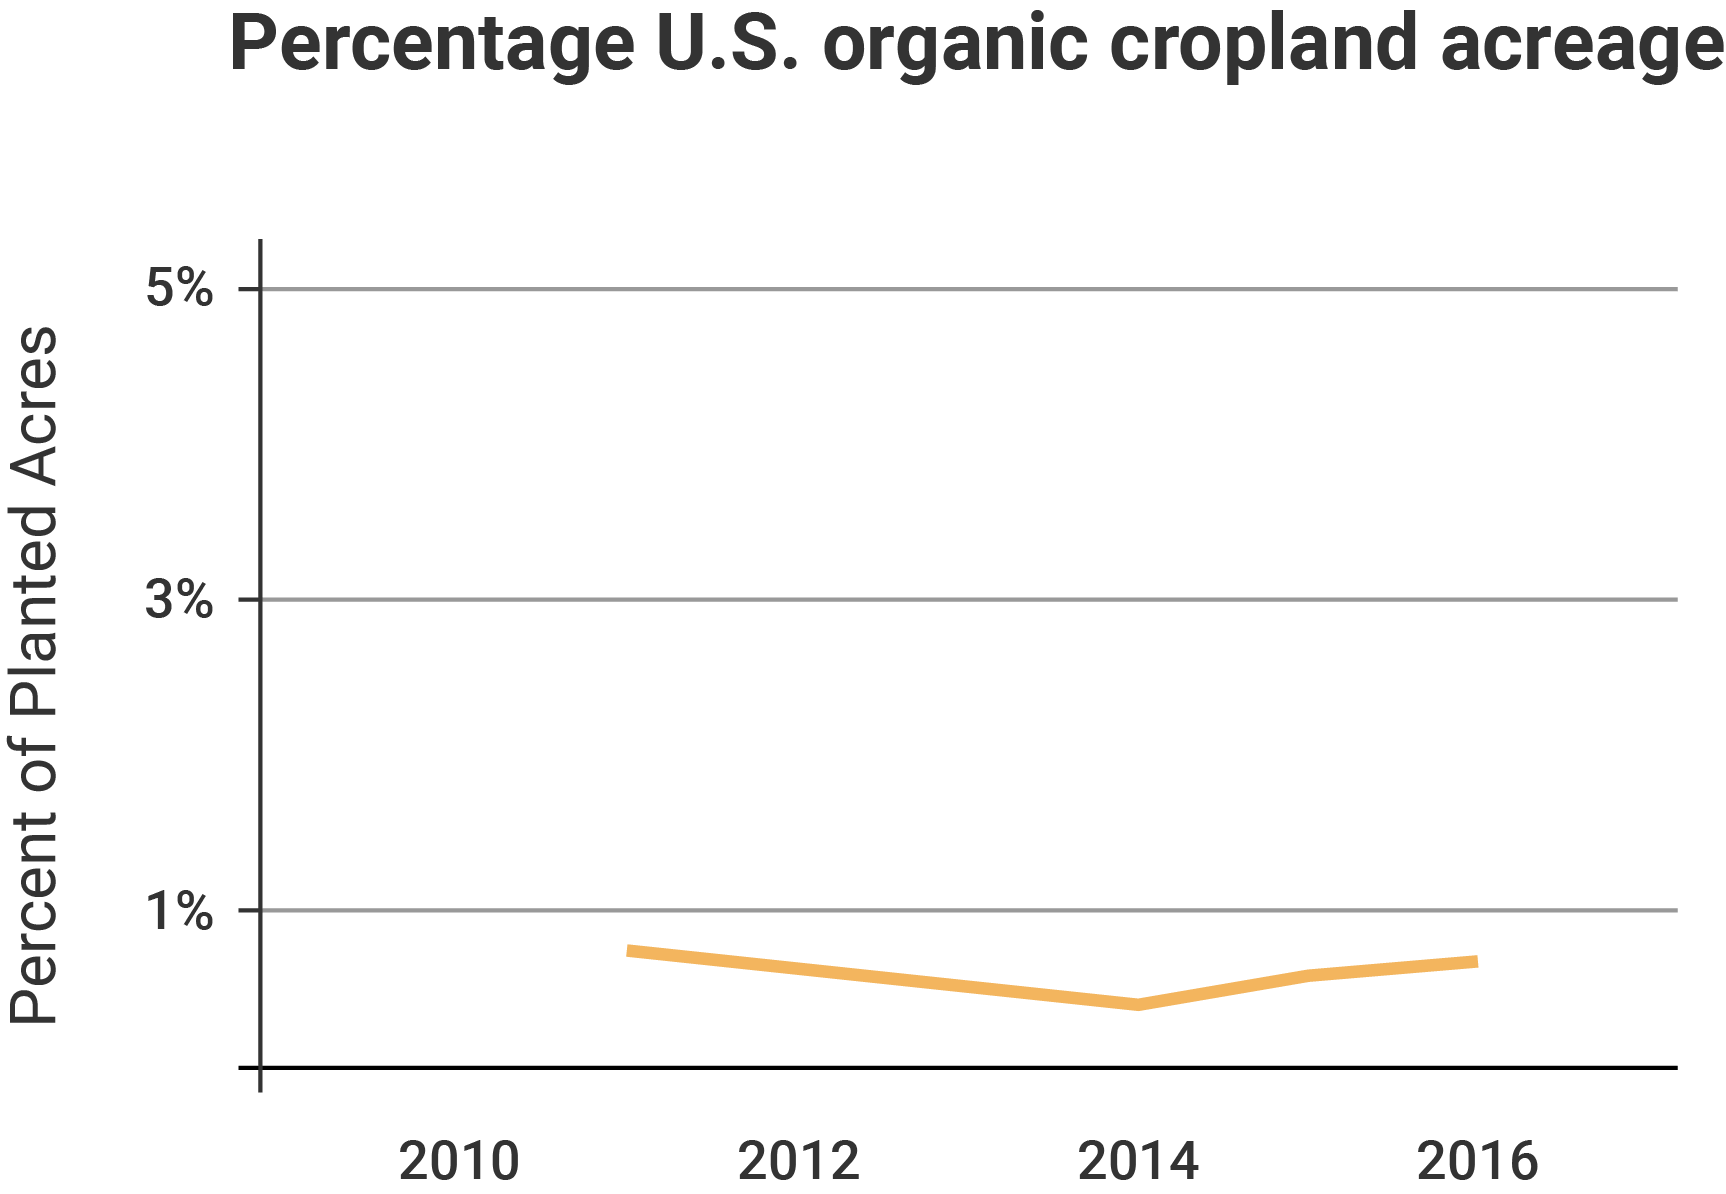 Percentage of U.S. organic cropland acreage from 2011 to 2016.